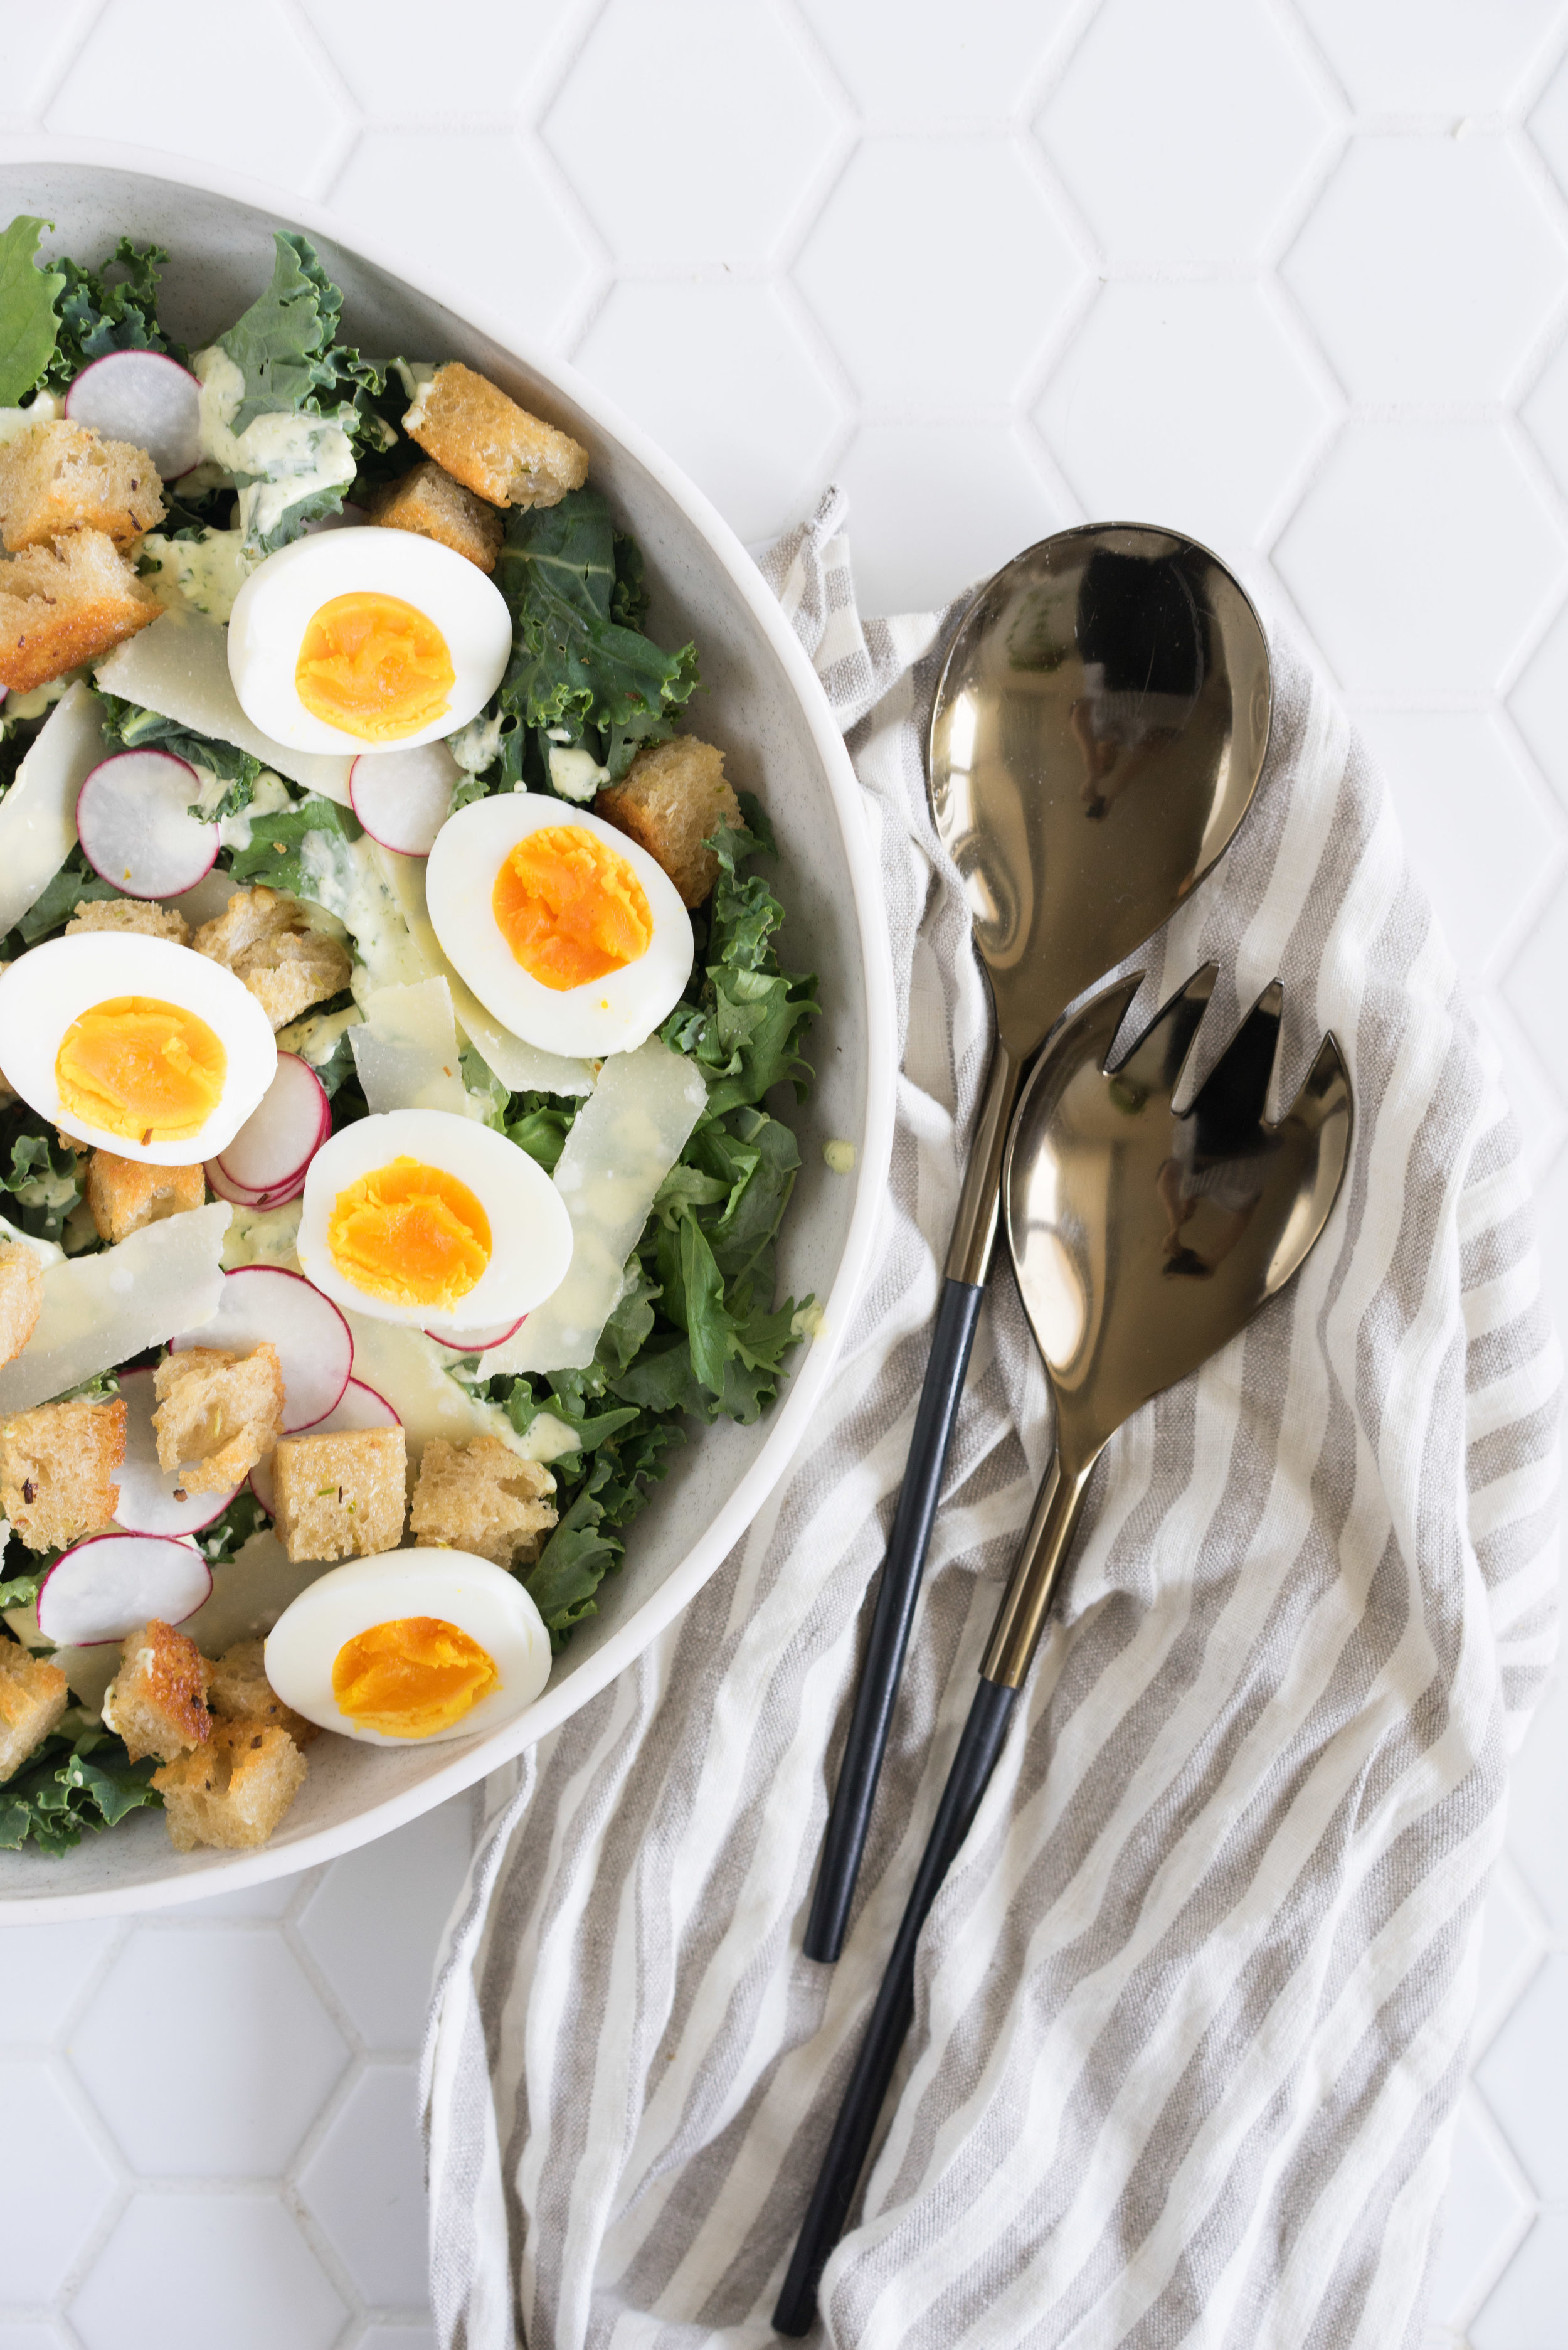 Kale Caesar salad with green garlic croutons and chive caesar dressing